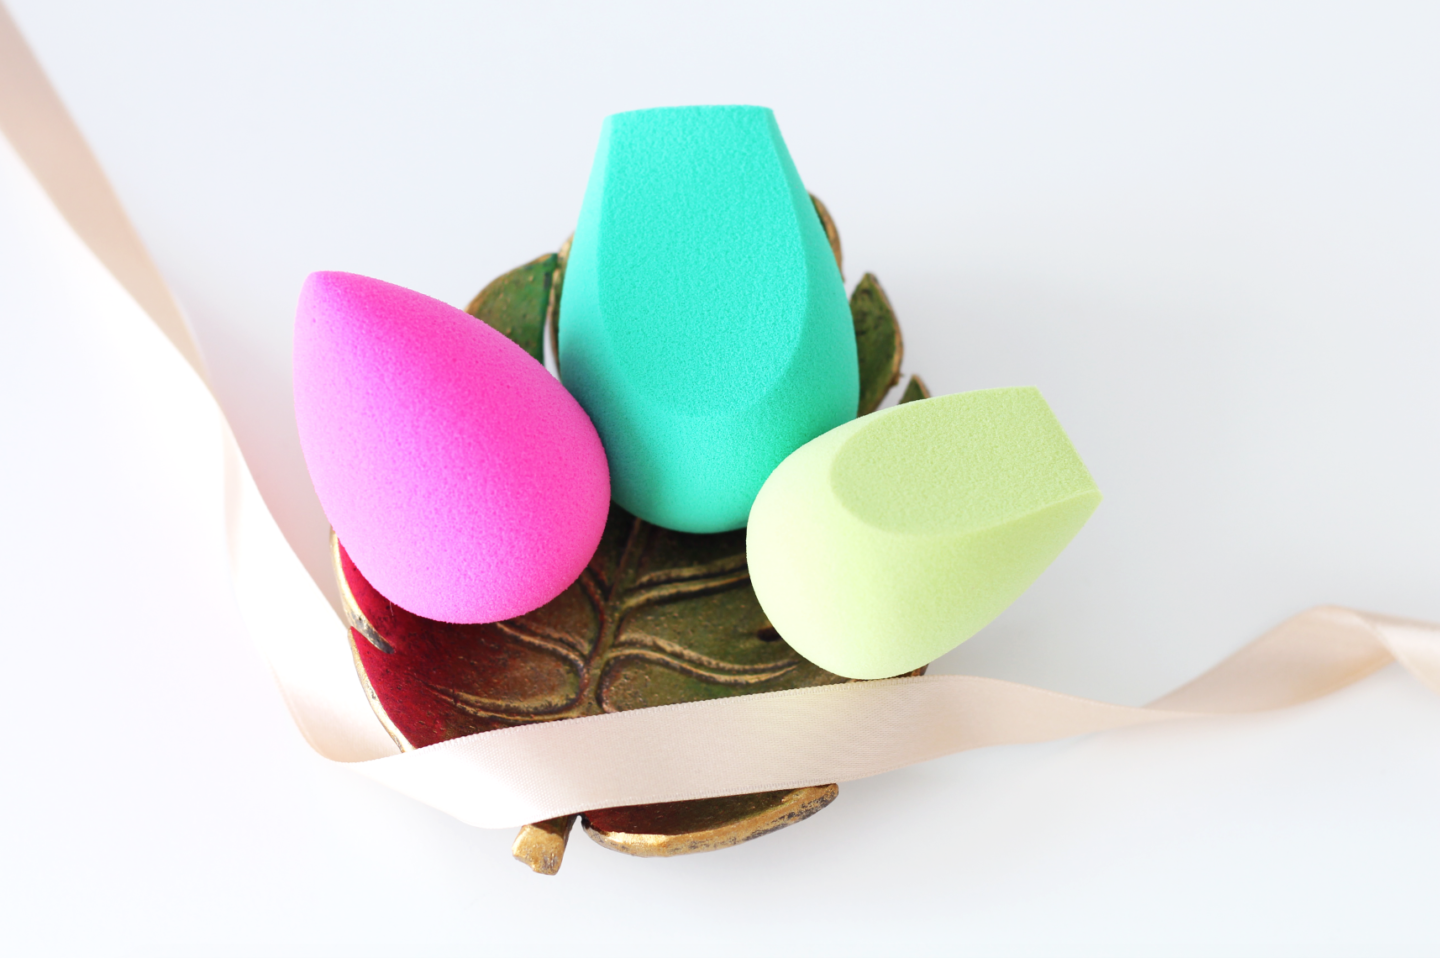 ECO TOOLS SPONGES vs BEAUTYBLENDER